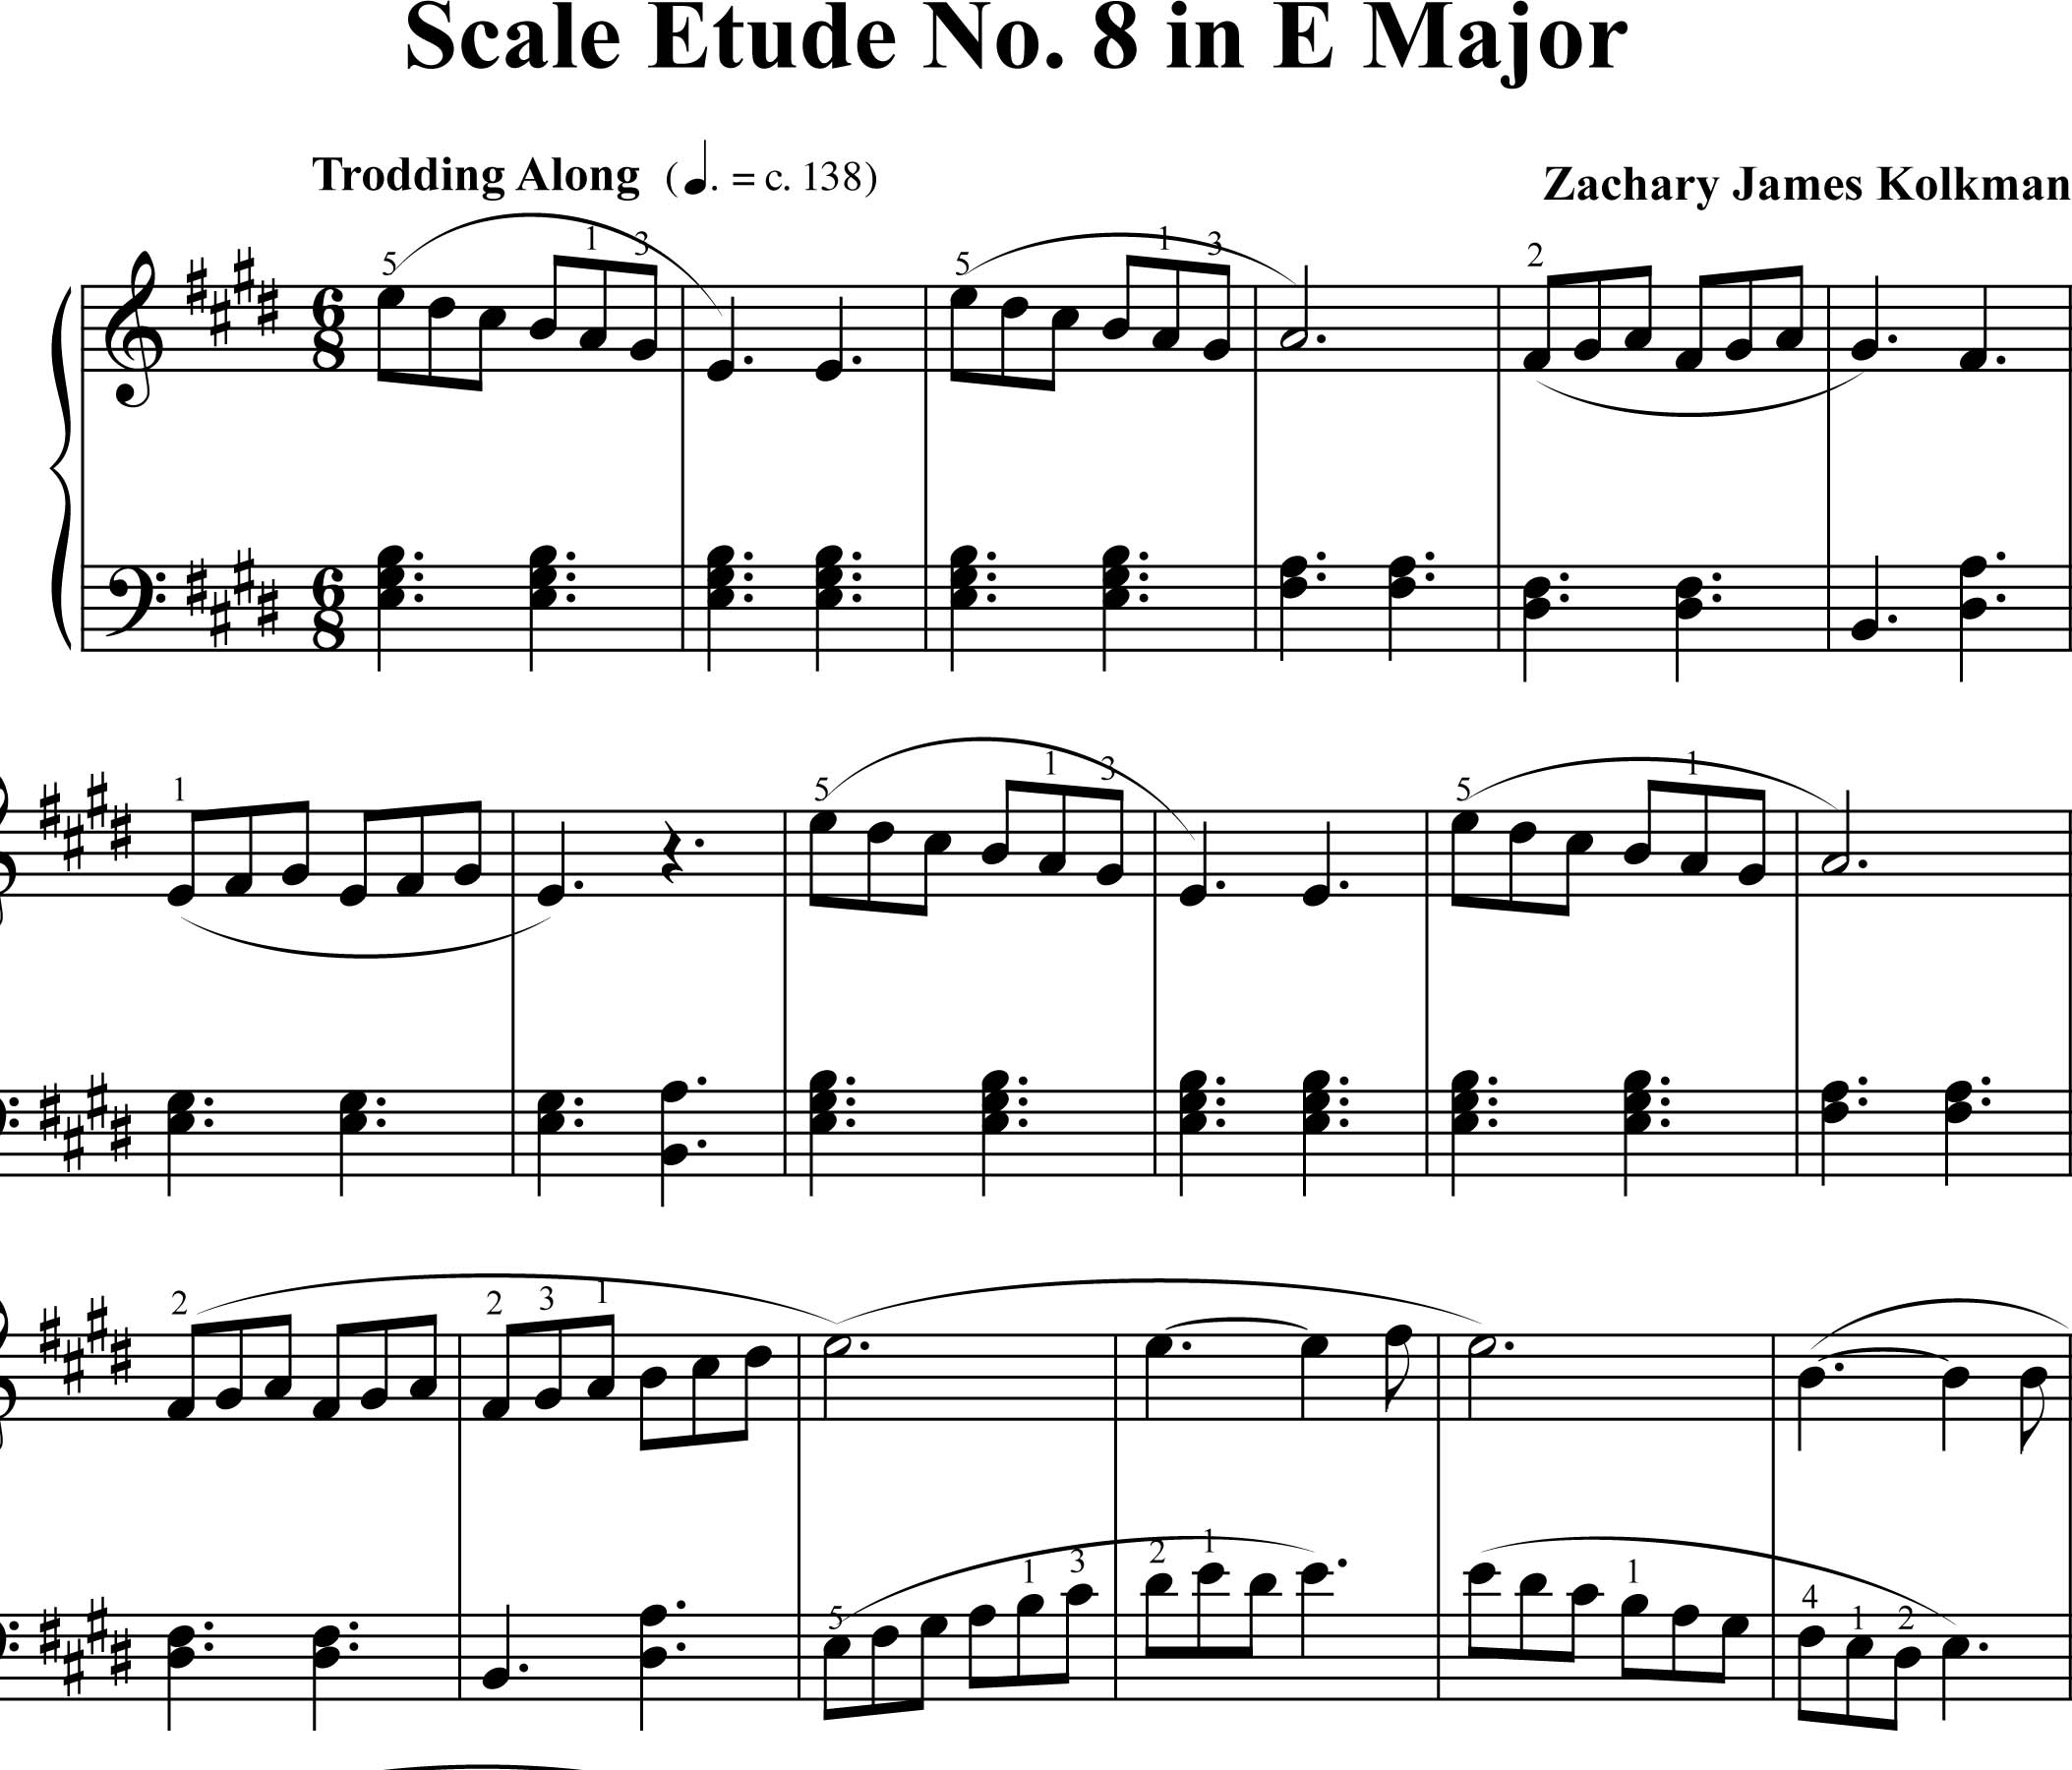 Sheet Music Download:  Scale Etude No. 8 in E Major